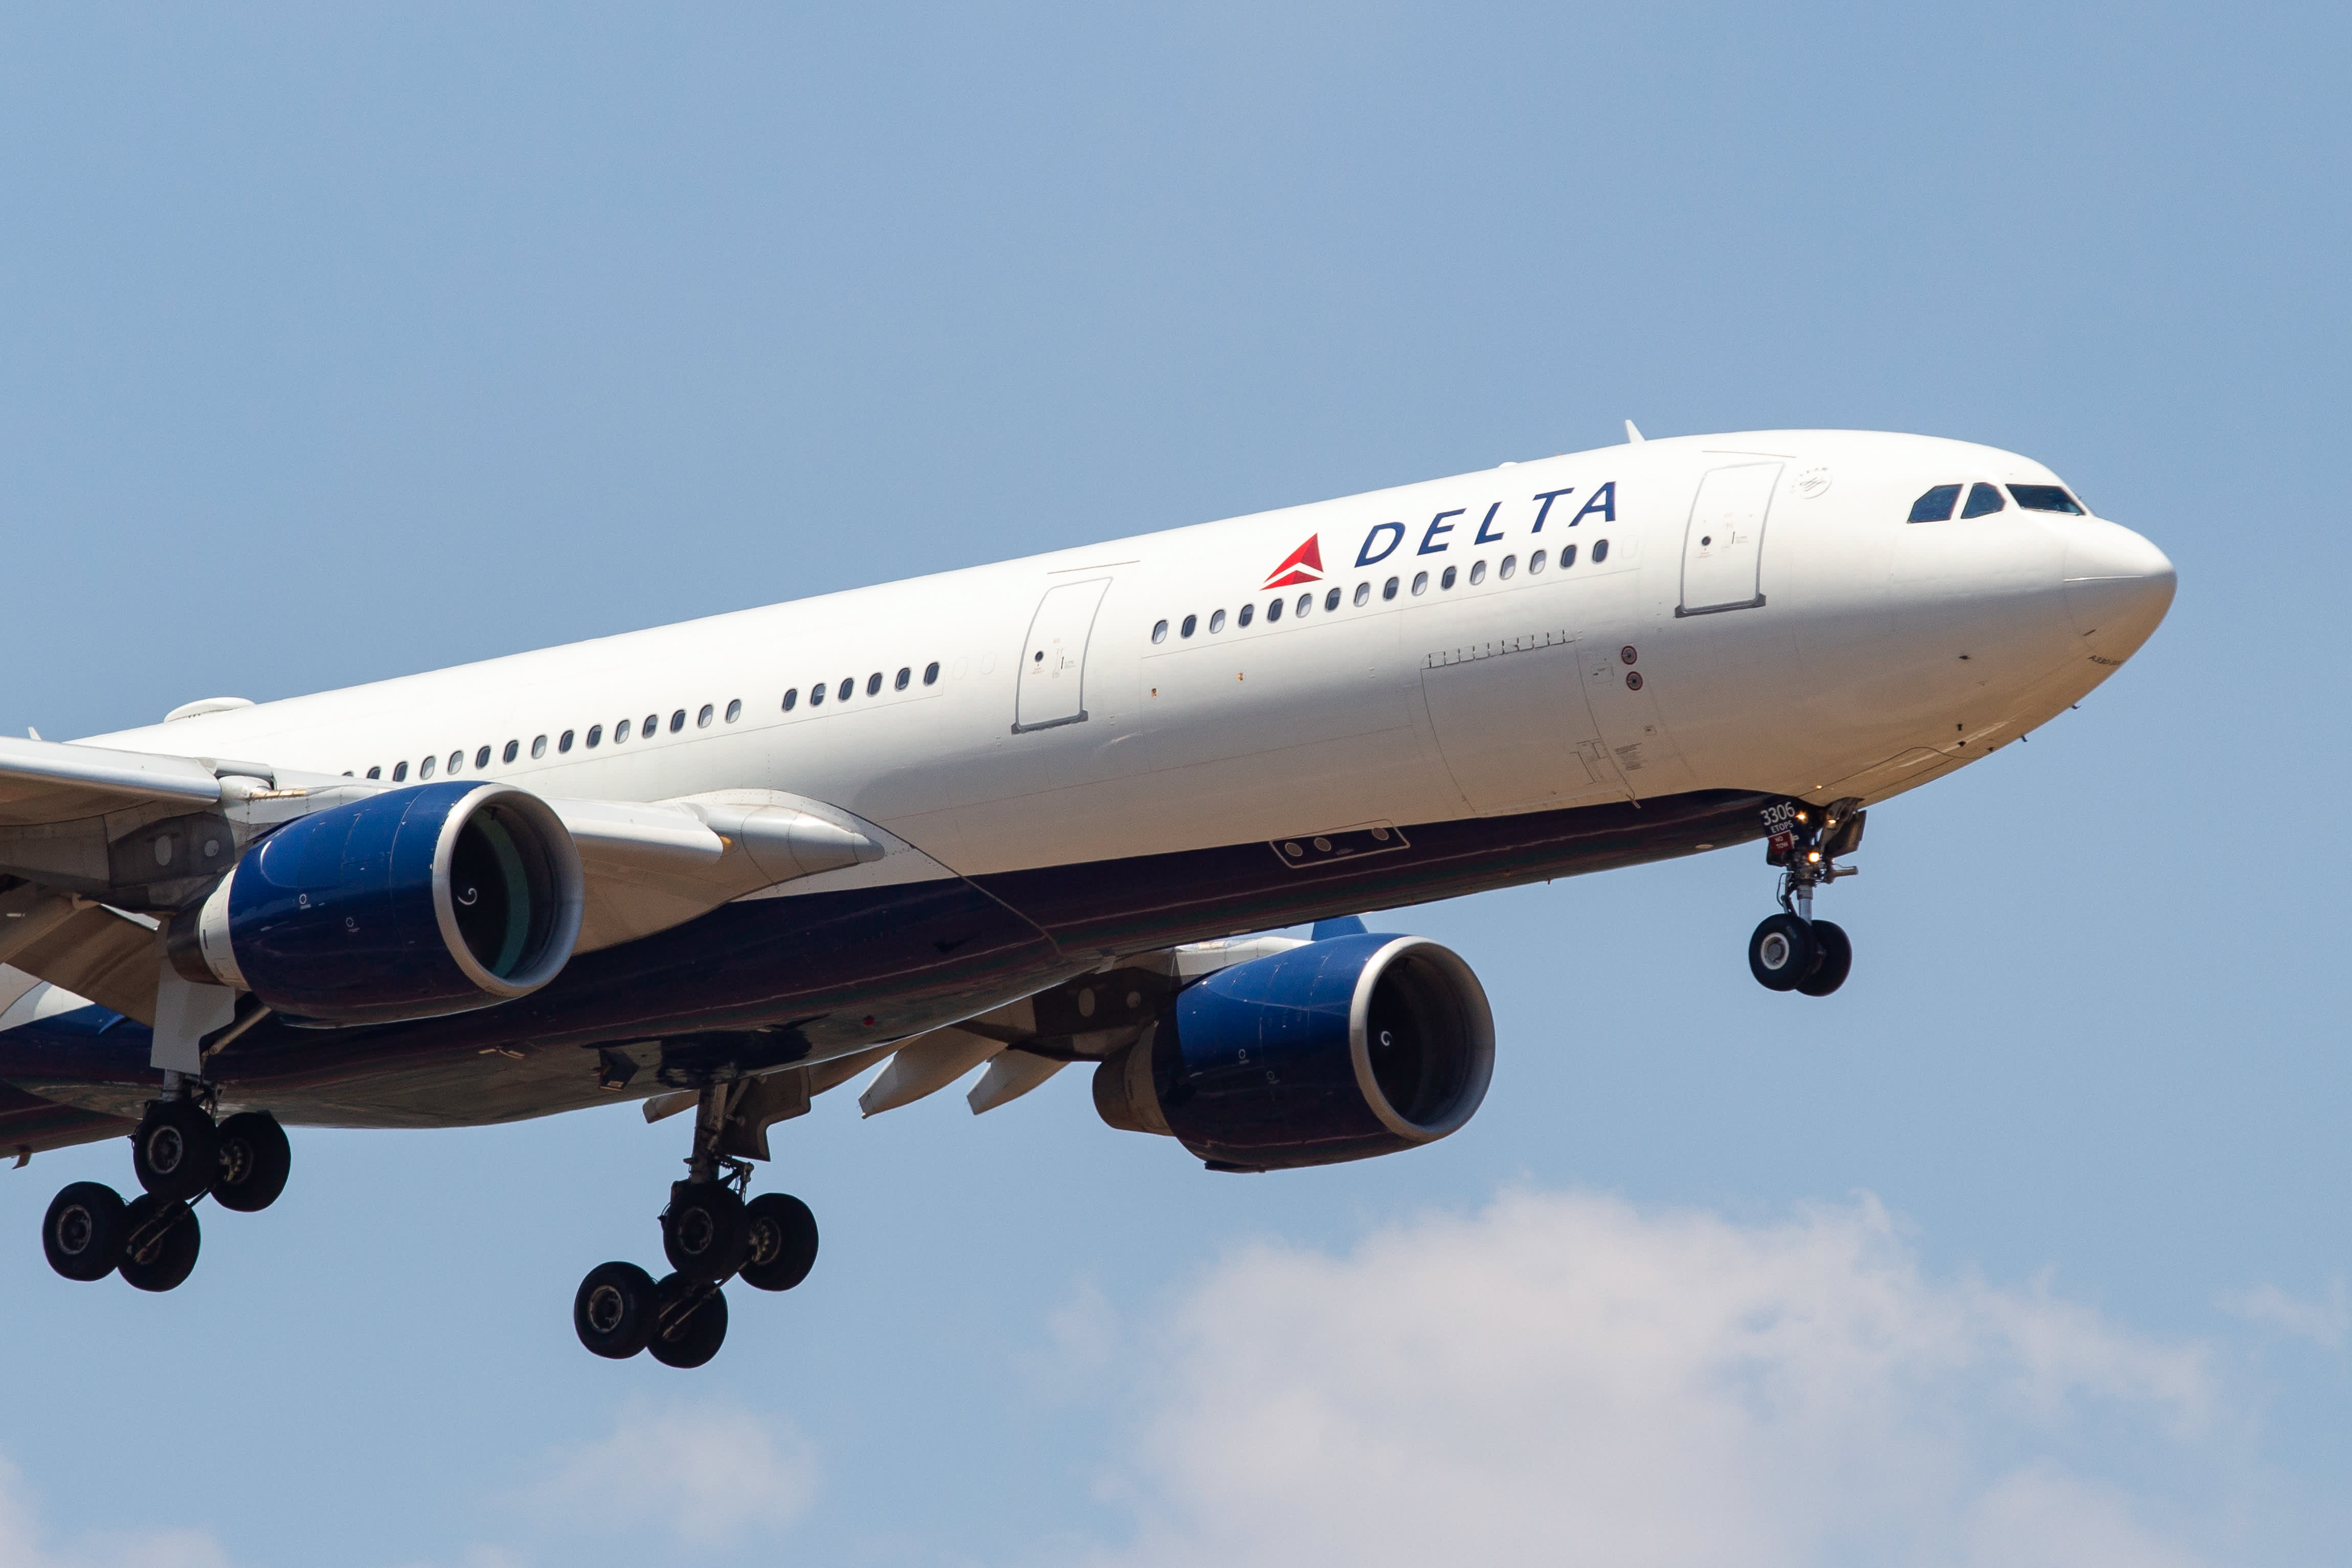 Delta CEO says it's hard to require vaccines for U.S. flights when Covid shots aren't fully approved